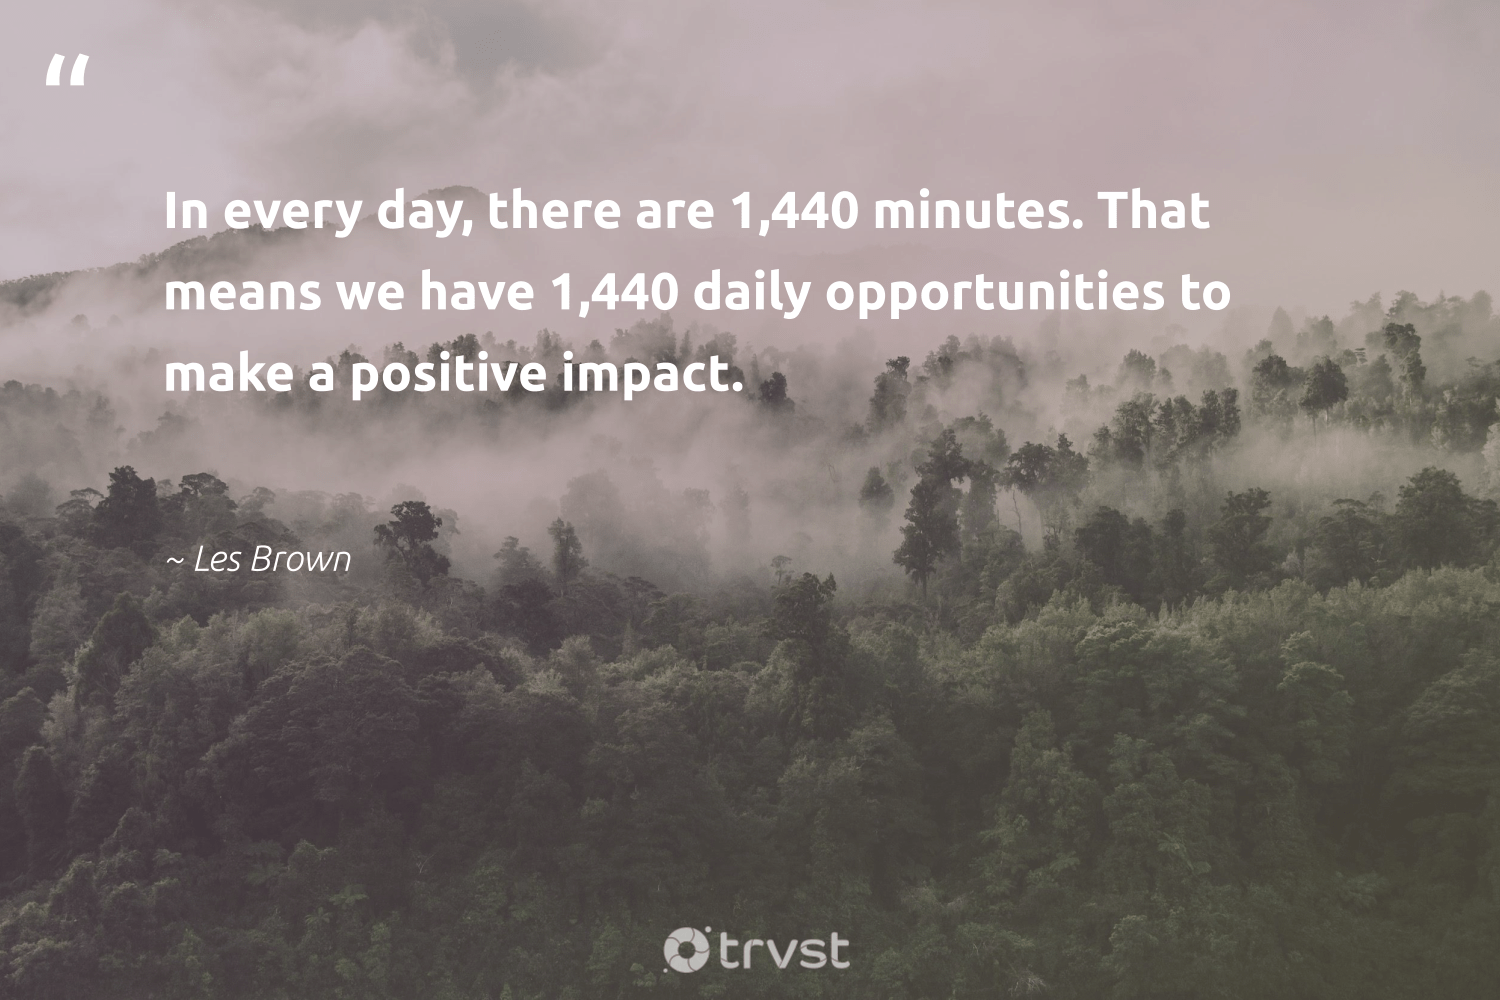 """""""In every day, there are 1,440 minutes. That means we have 1,440 daily opportunities to make a positive impact.""""  - Les Brown #trvst #quotes #impact #socialchange #changetheworld #makeadifference #gogreen #ethicalbusiness #dogood #weareallone #ecoconscious #giveback"""